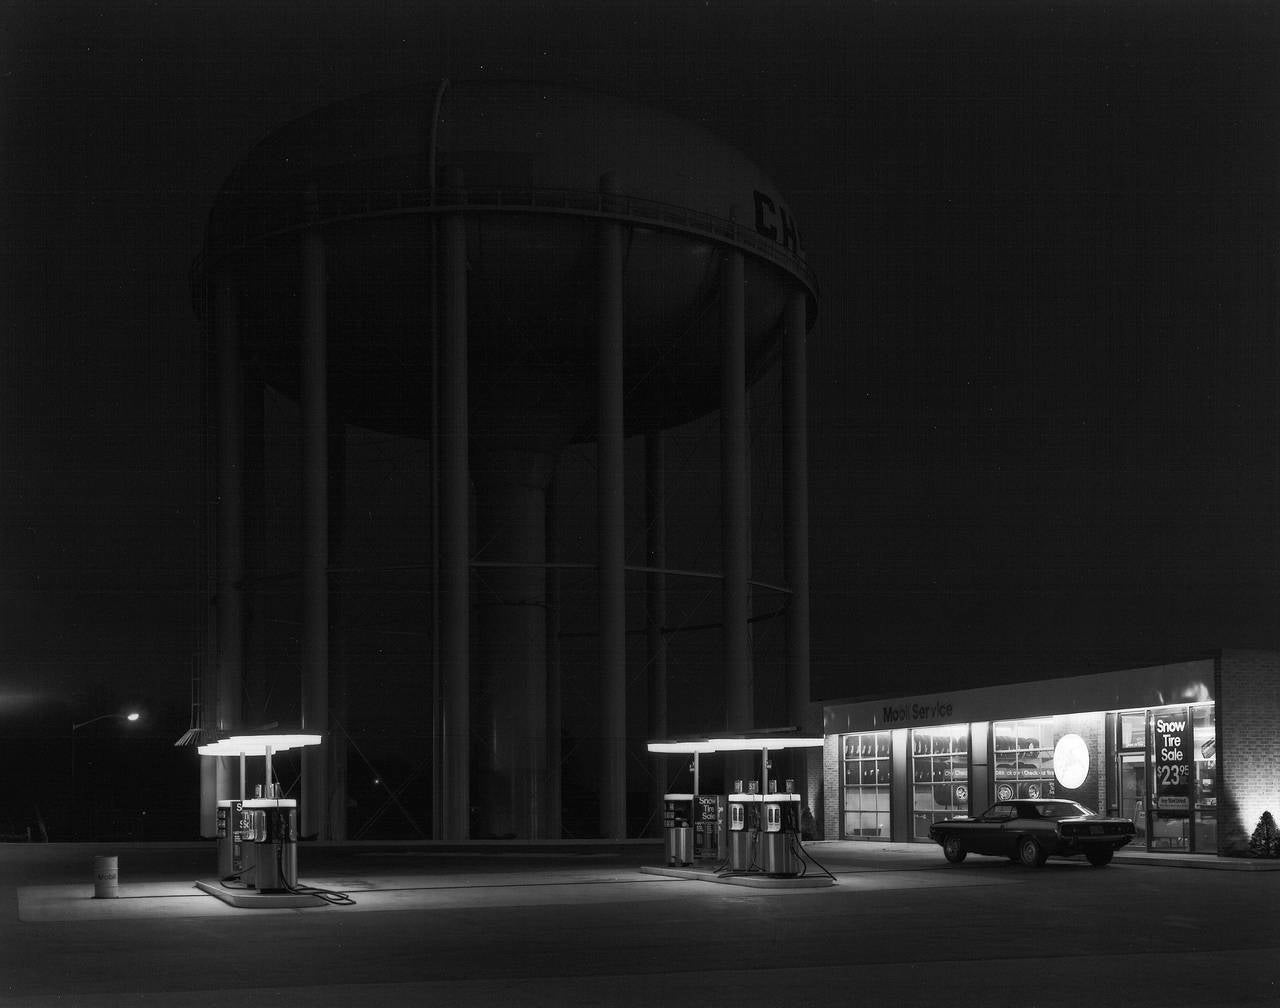 George Tice Petit 39 S Mobil Station Cherry Hill Nj Photograph For Sale At 1stdibs